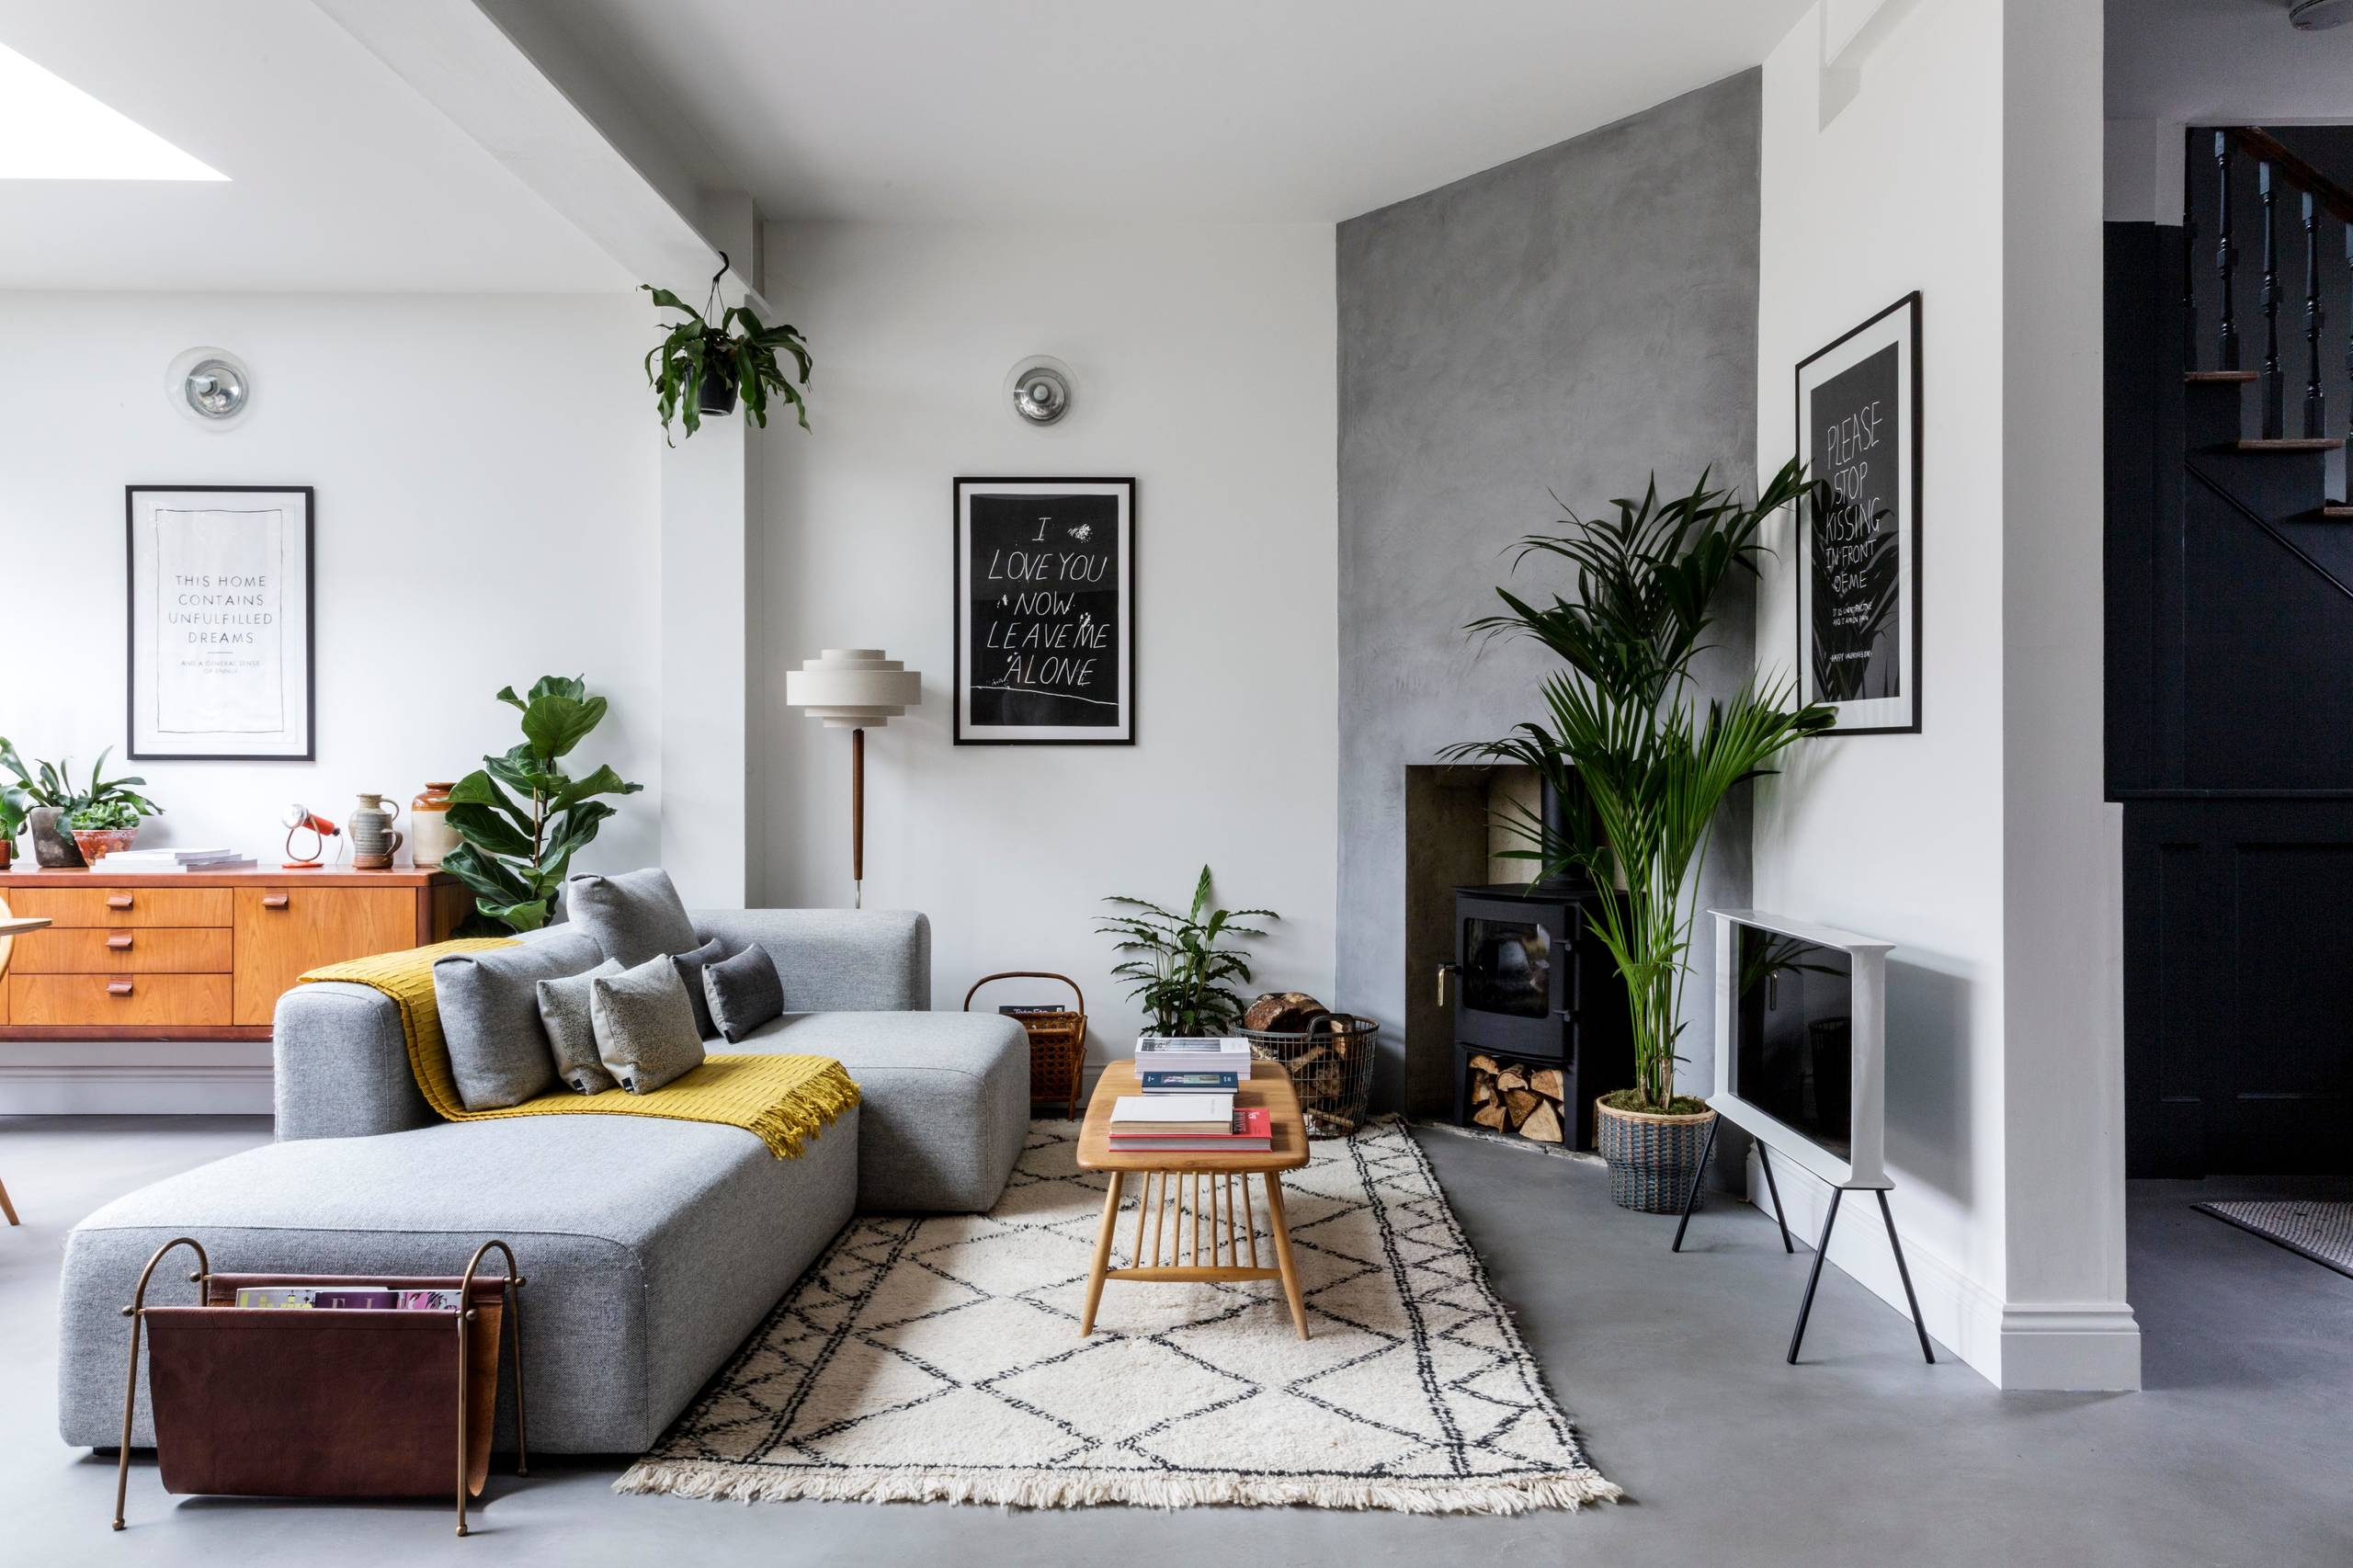 75 Beautiful Living Room With A Tv Stand Pictures Ideas December 2020 Houzz